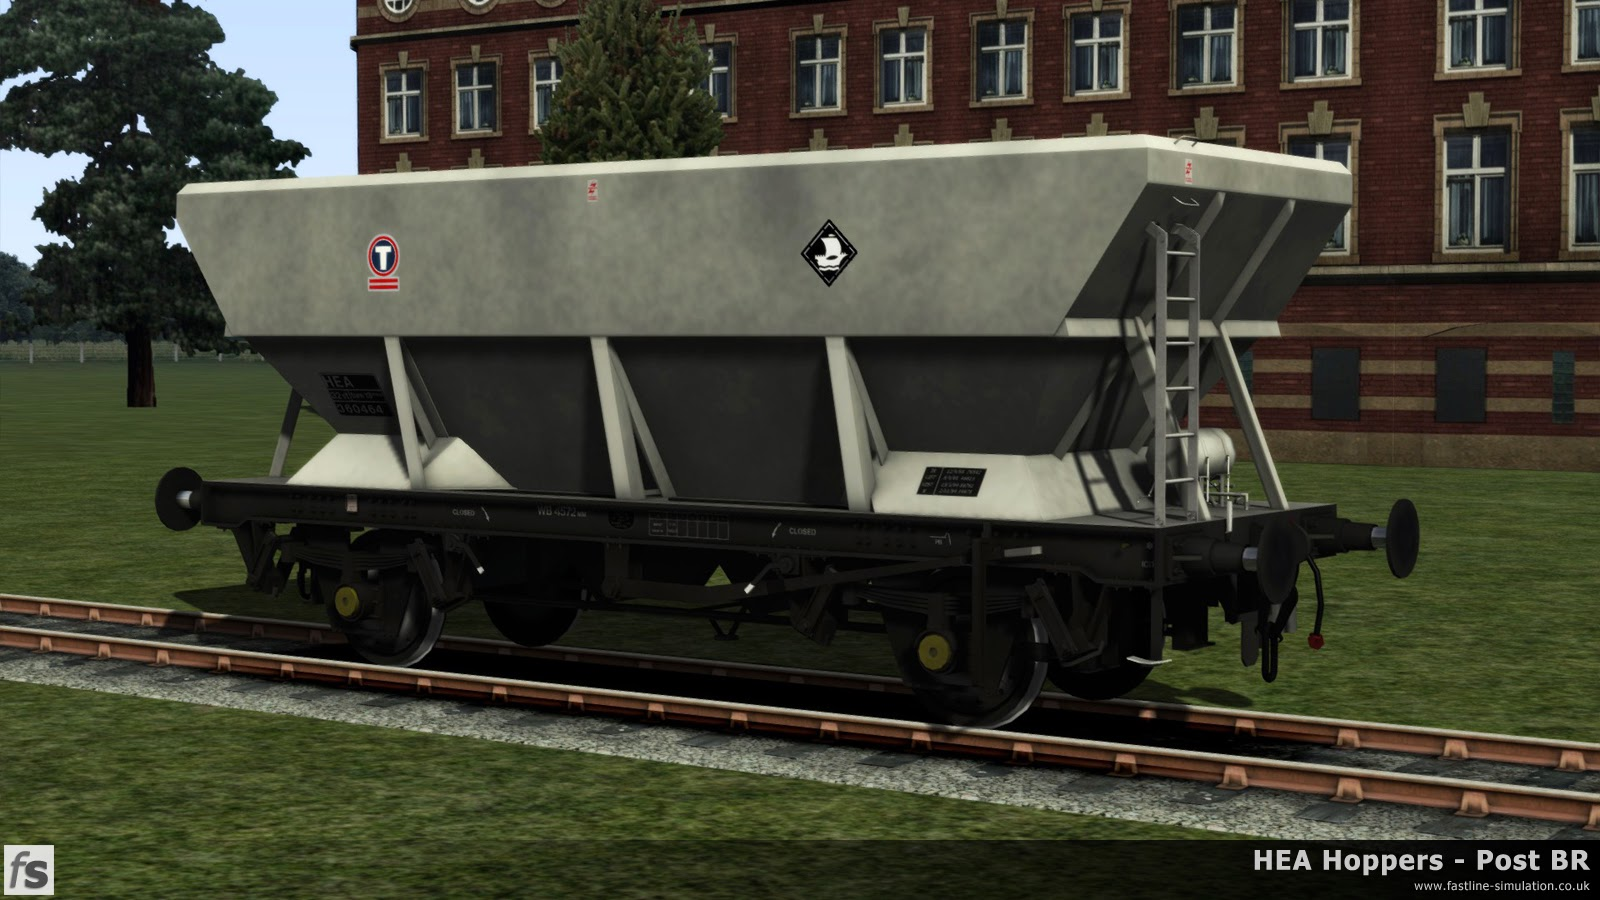 HEA Hoppers - Post BR: A work in progress picture of one of the later offset ladder HEA hoppers in almost ex-works Transrail livery under development for Train Simulator 2014.